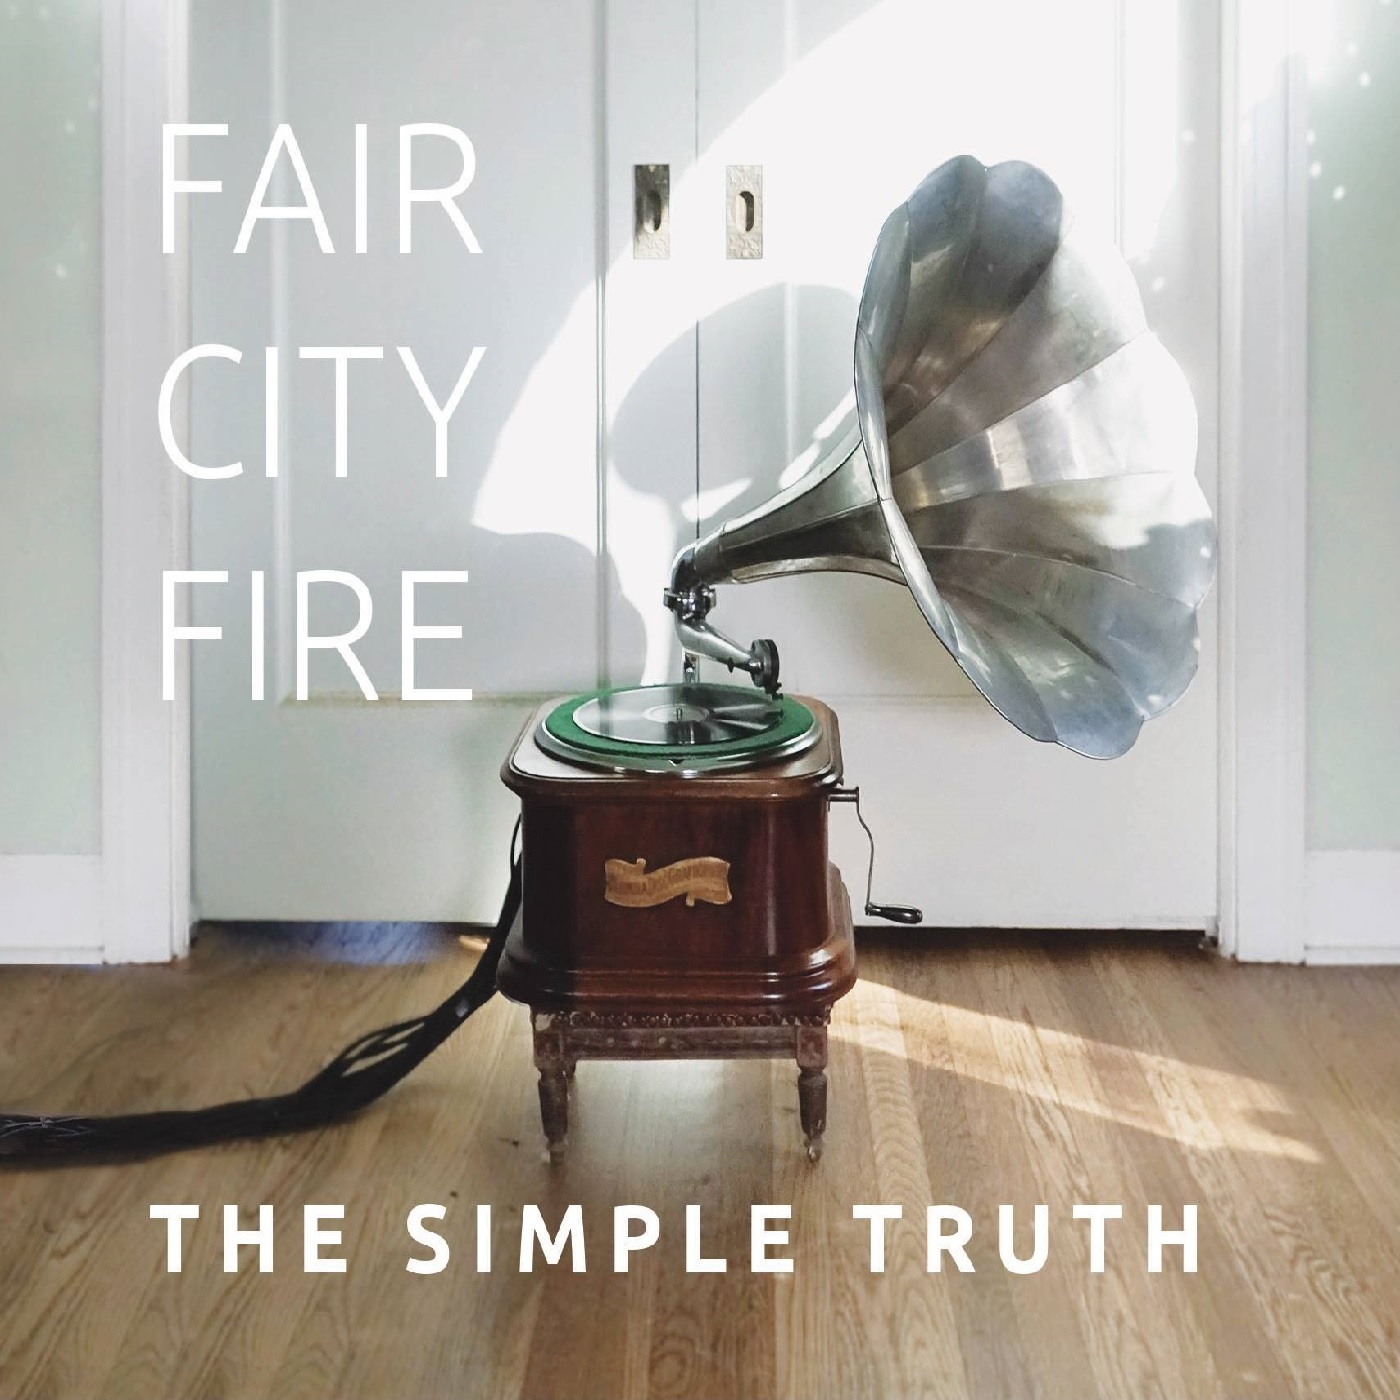 The Simple Truth Album Cover- Designed by Dos Mundos Creative- Location- Immortal Performance in Austin, Texas (yes that still works!!)